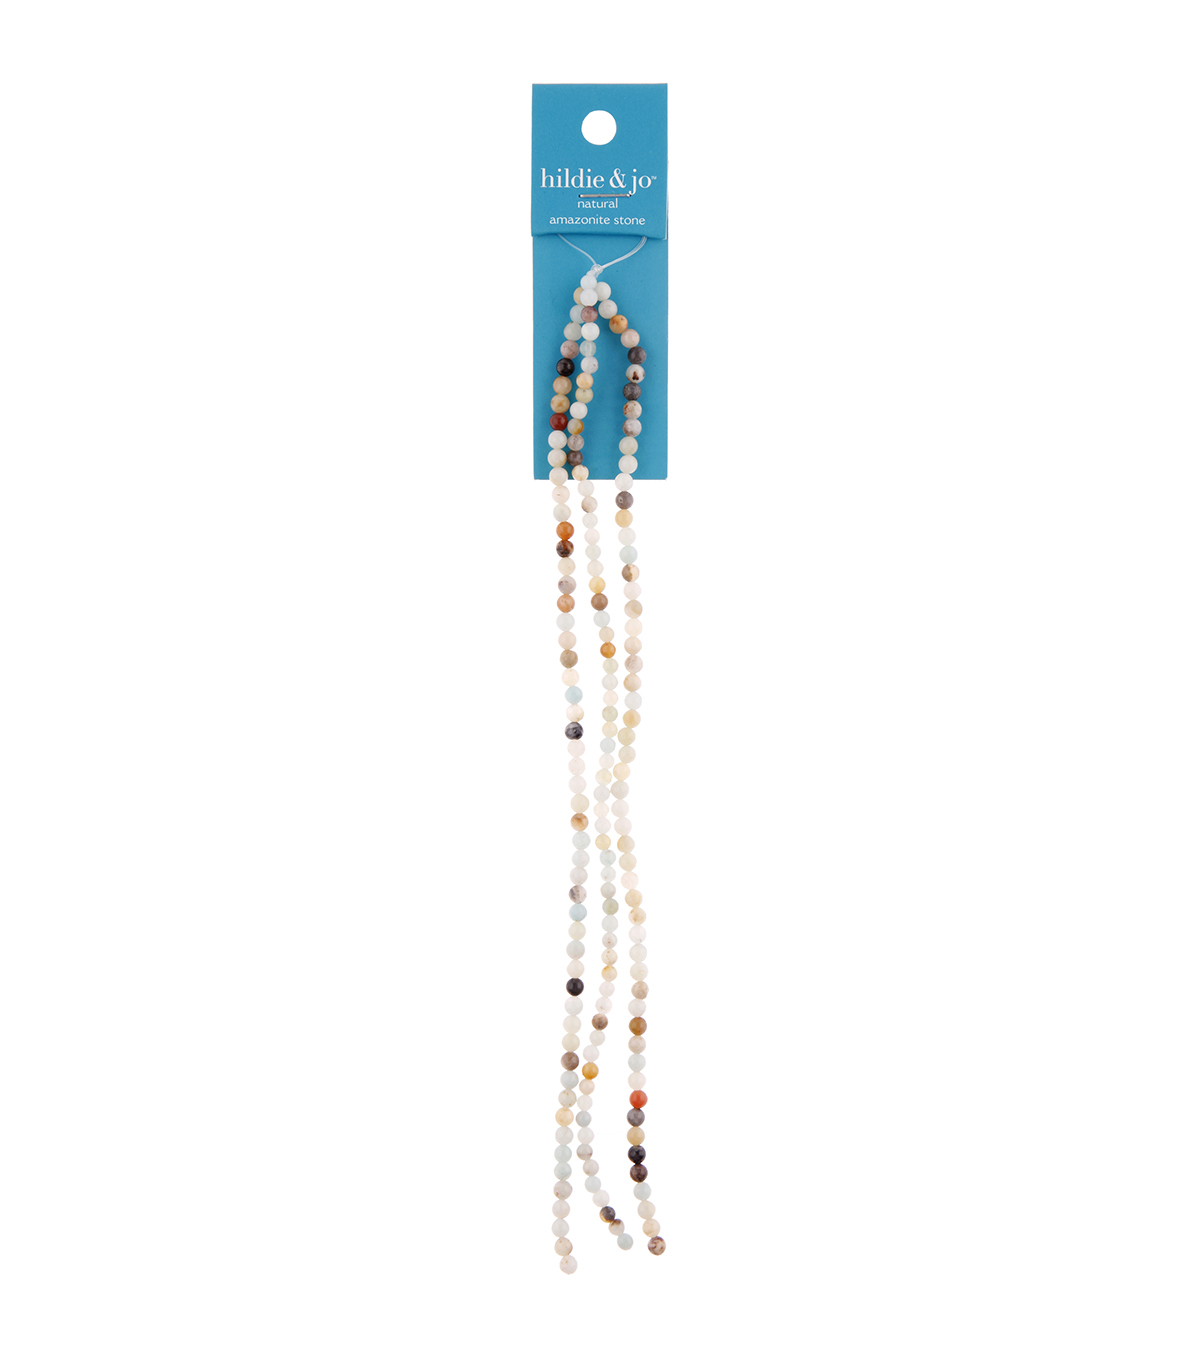 hildie & jo 21\u0027\u0027 Round Amazonite Stone Multi Strand Beads-Mixed Color